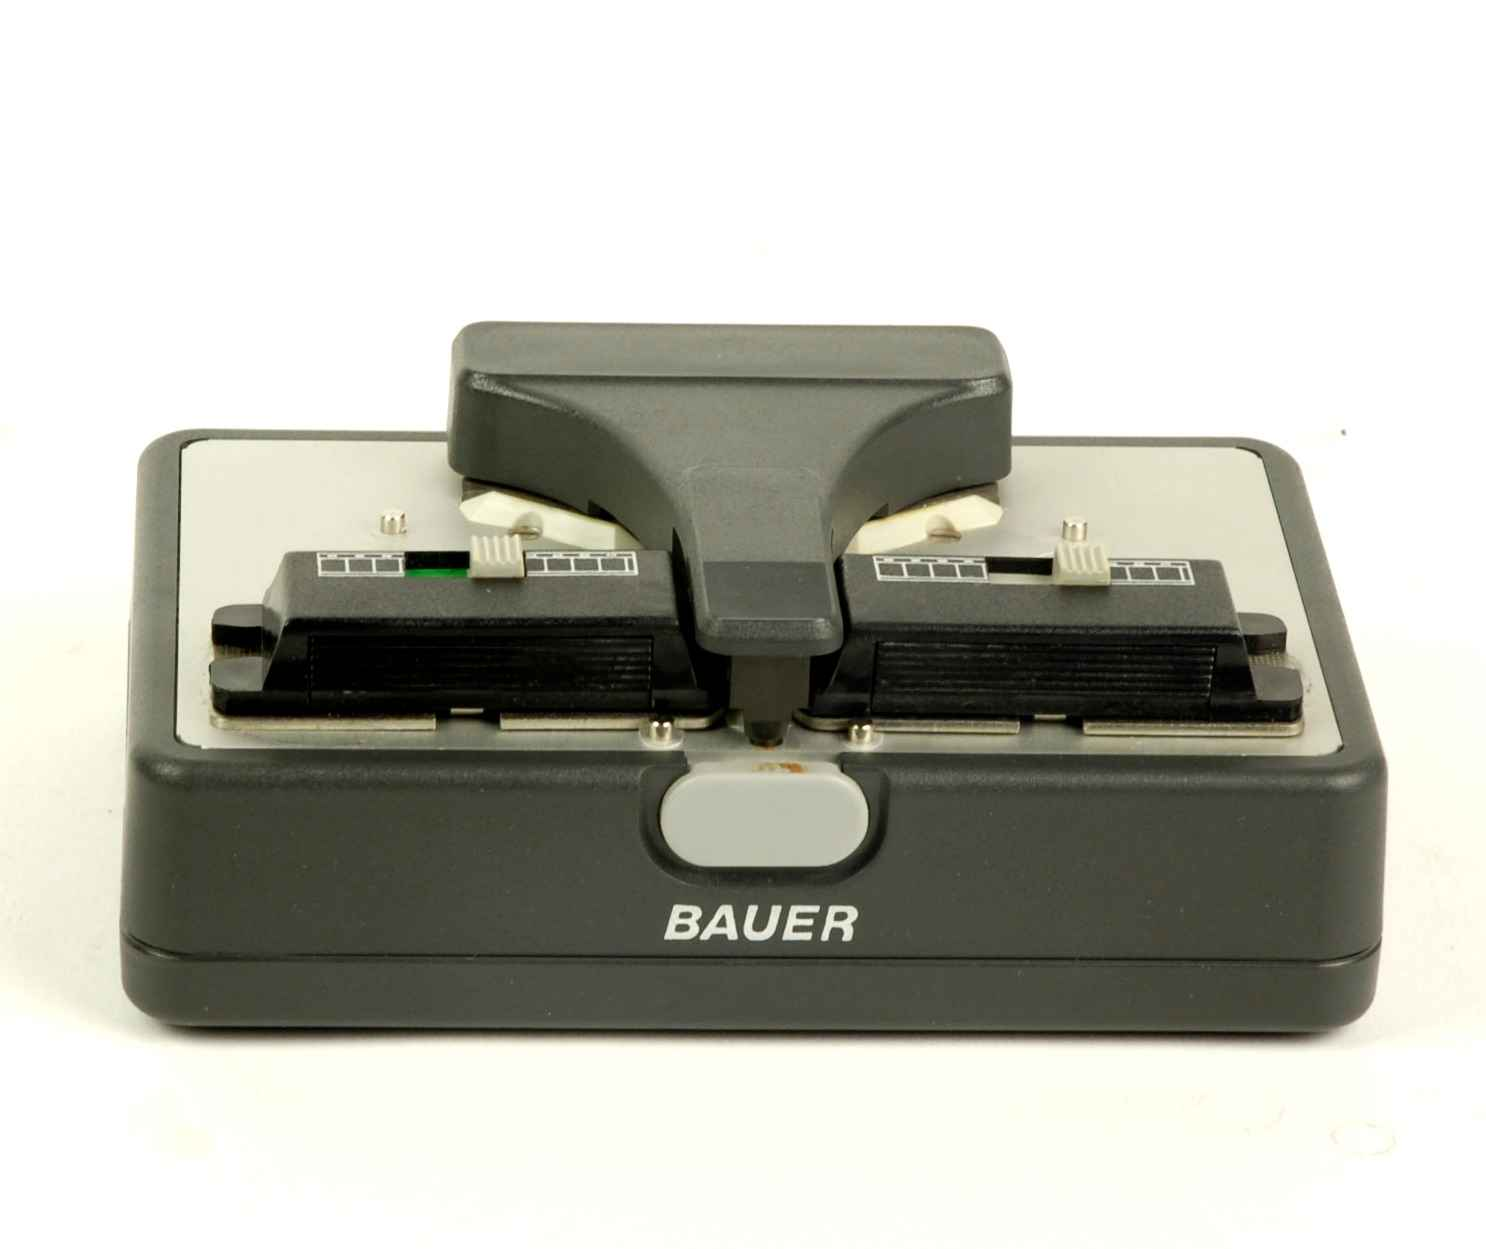 Bauer K20 motorized splicer (single8 and super8) (used)